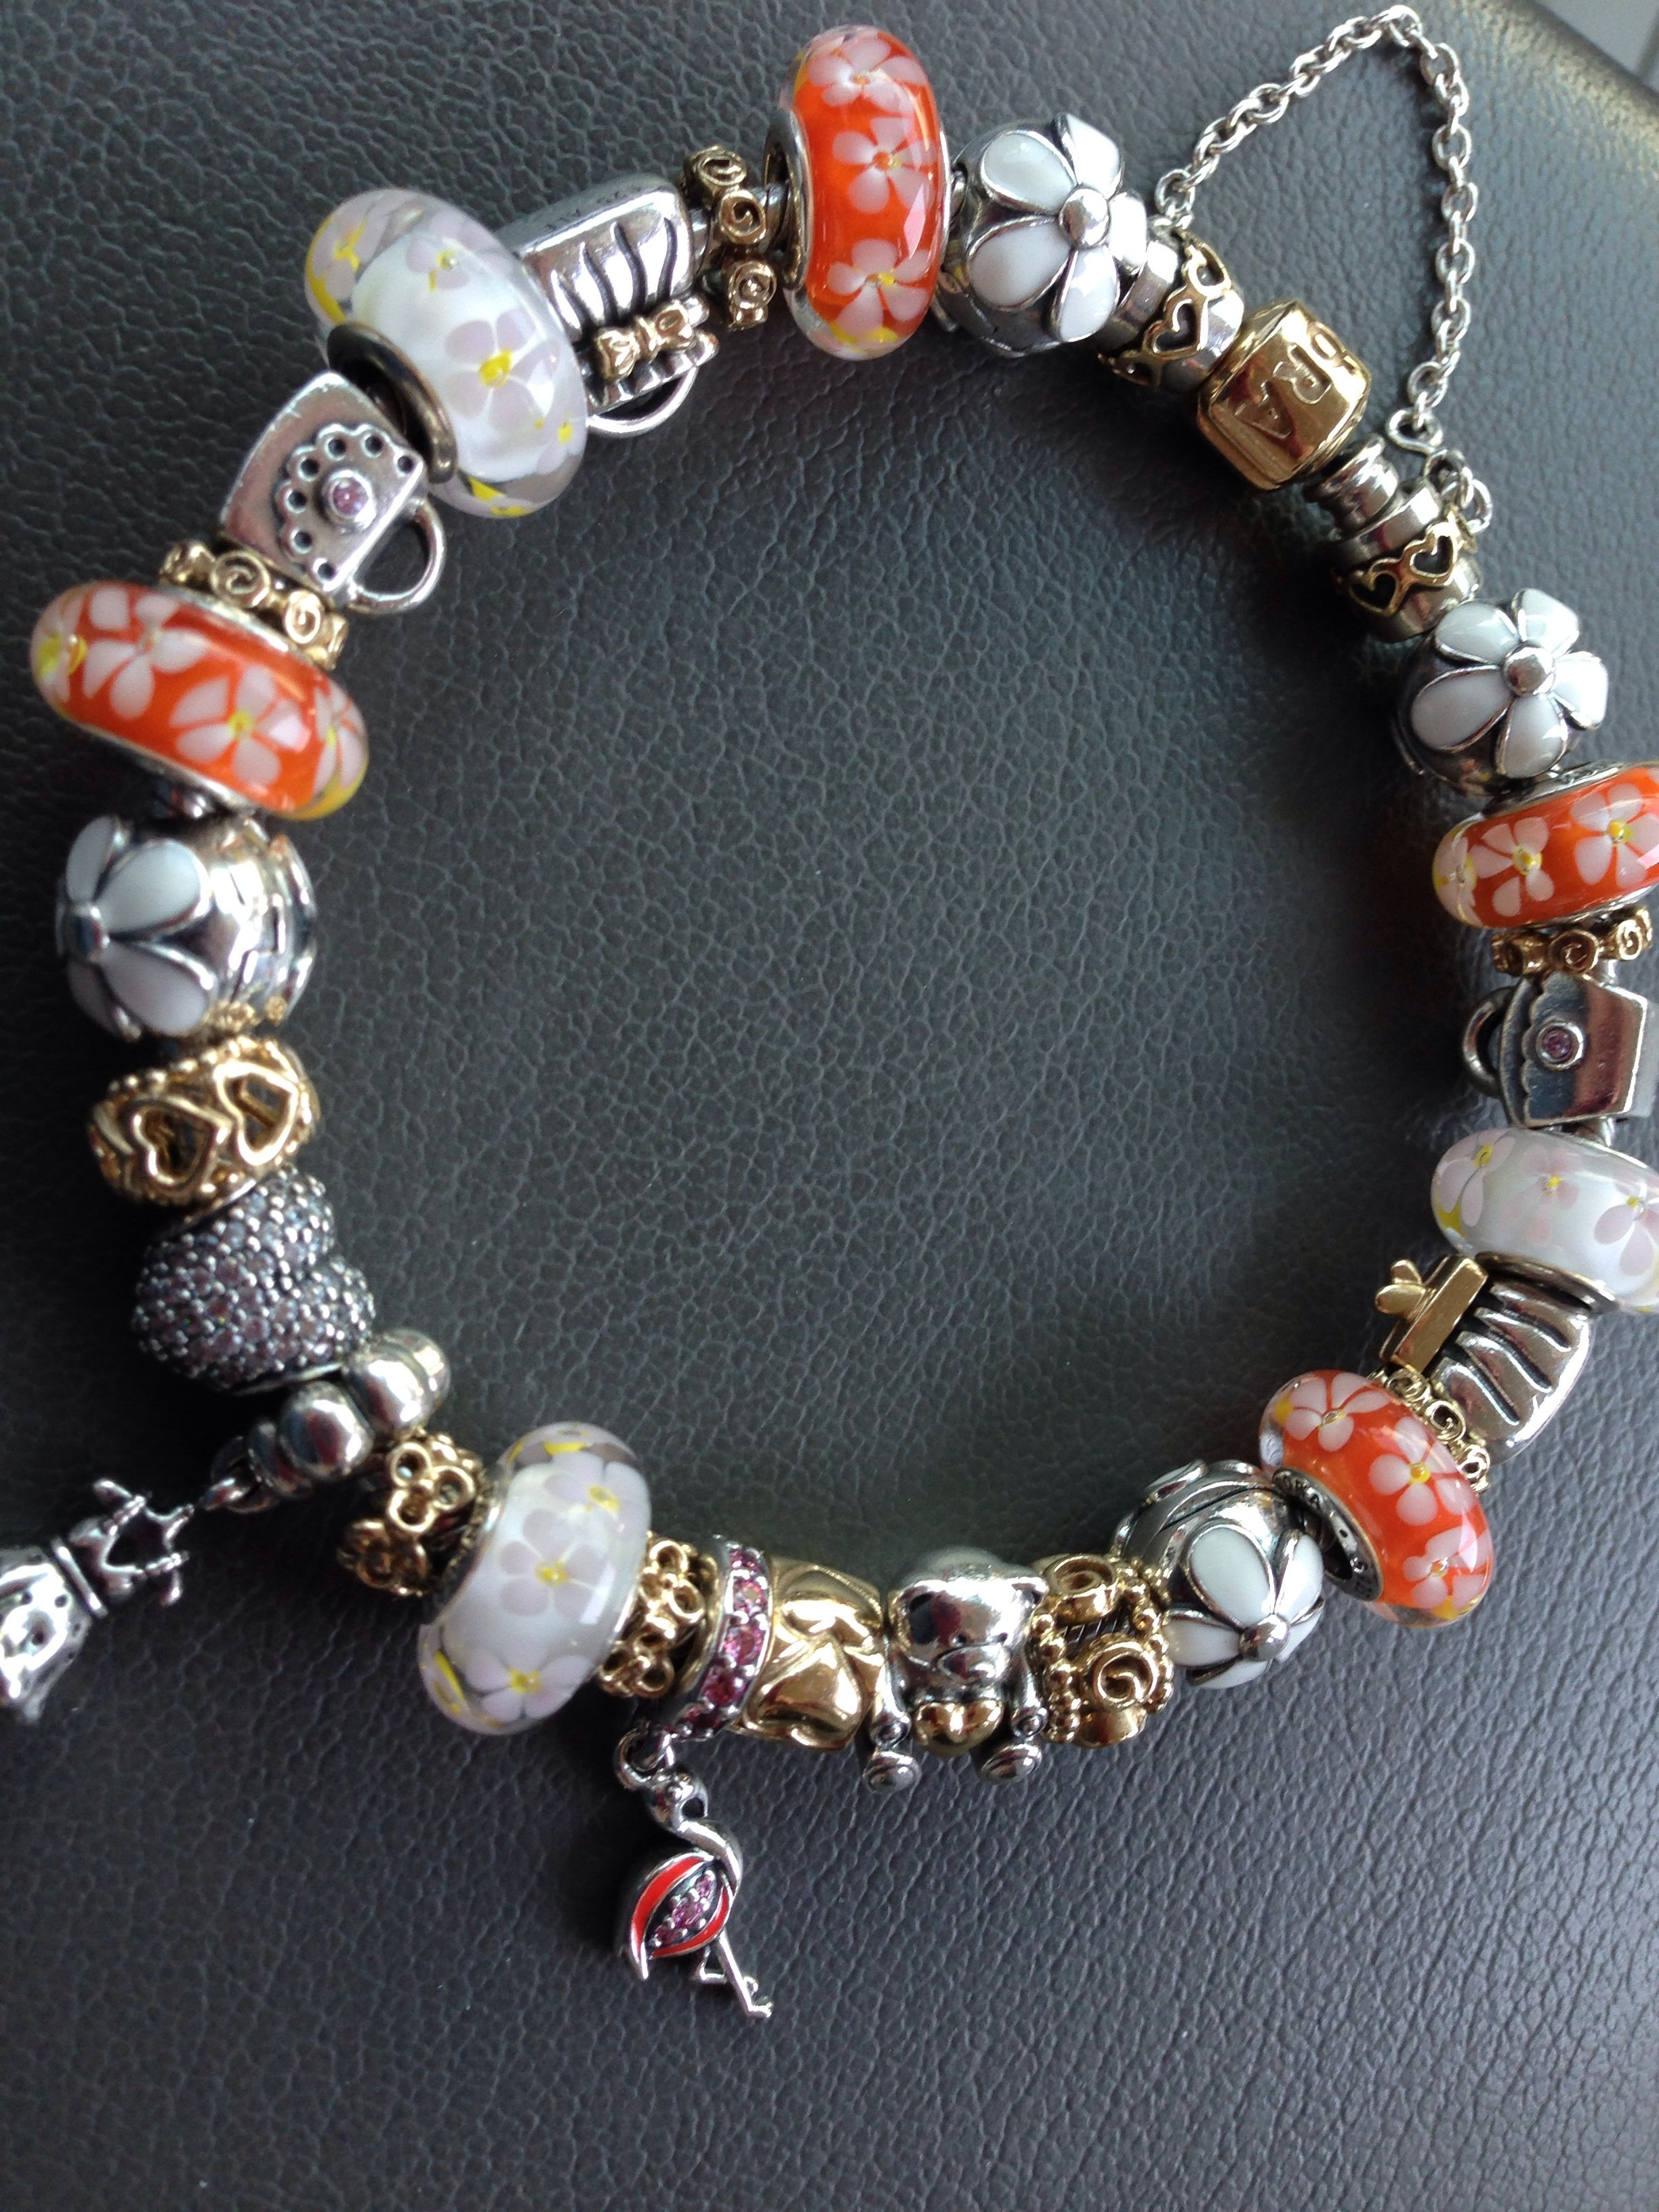 Pandora Bracelet With Beautiful Orange And White Floral Murano